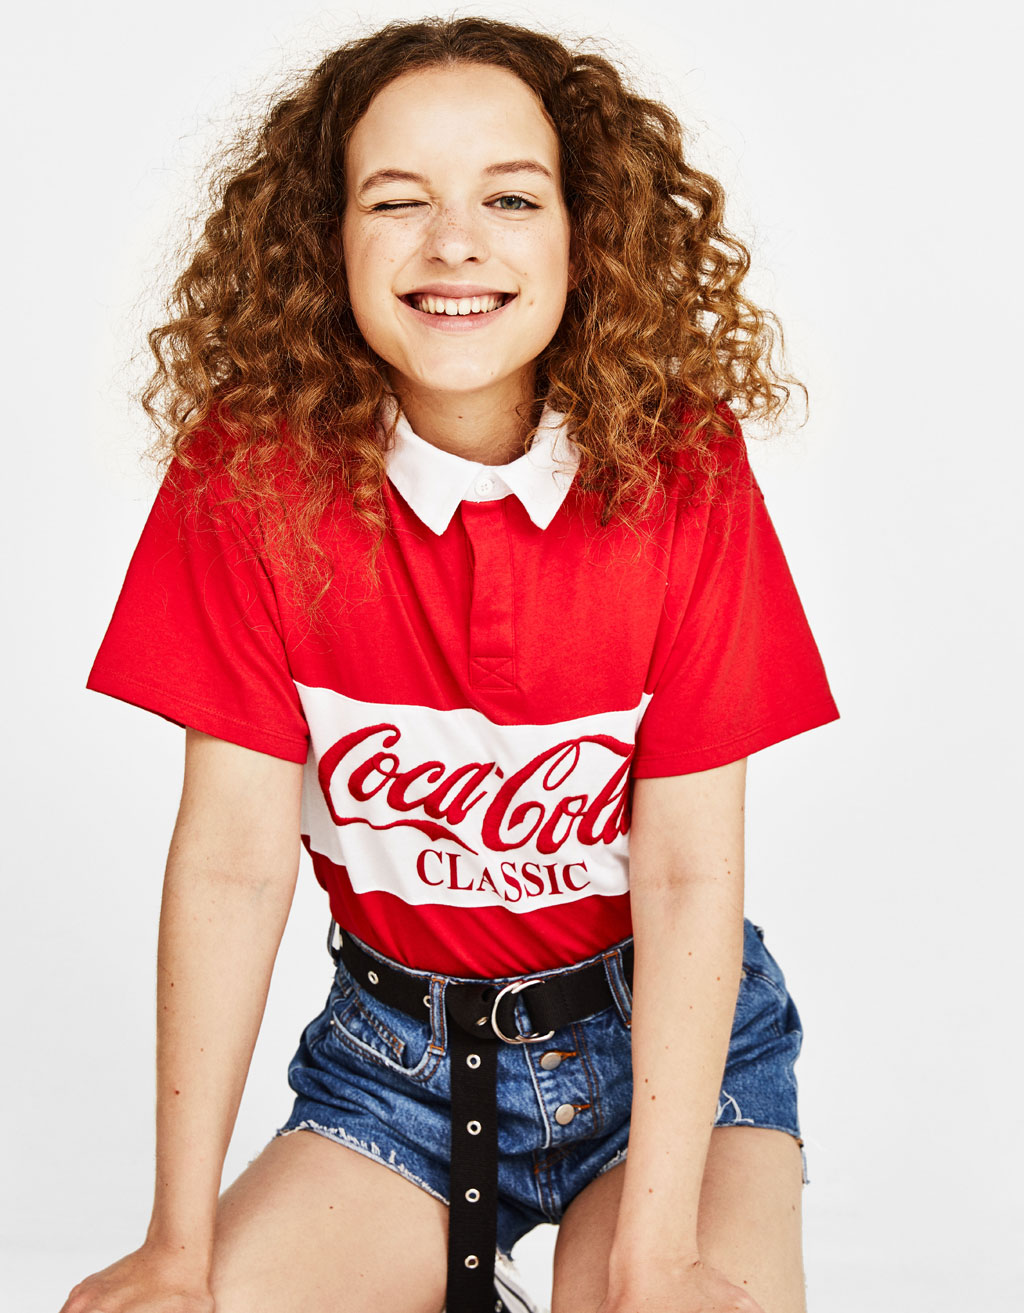 Coca-Cola polo shirt